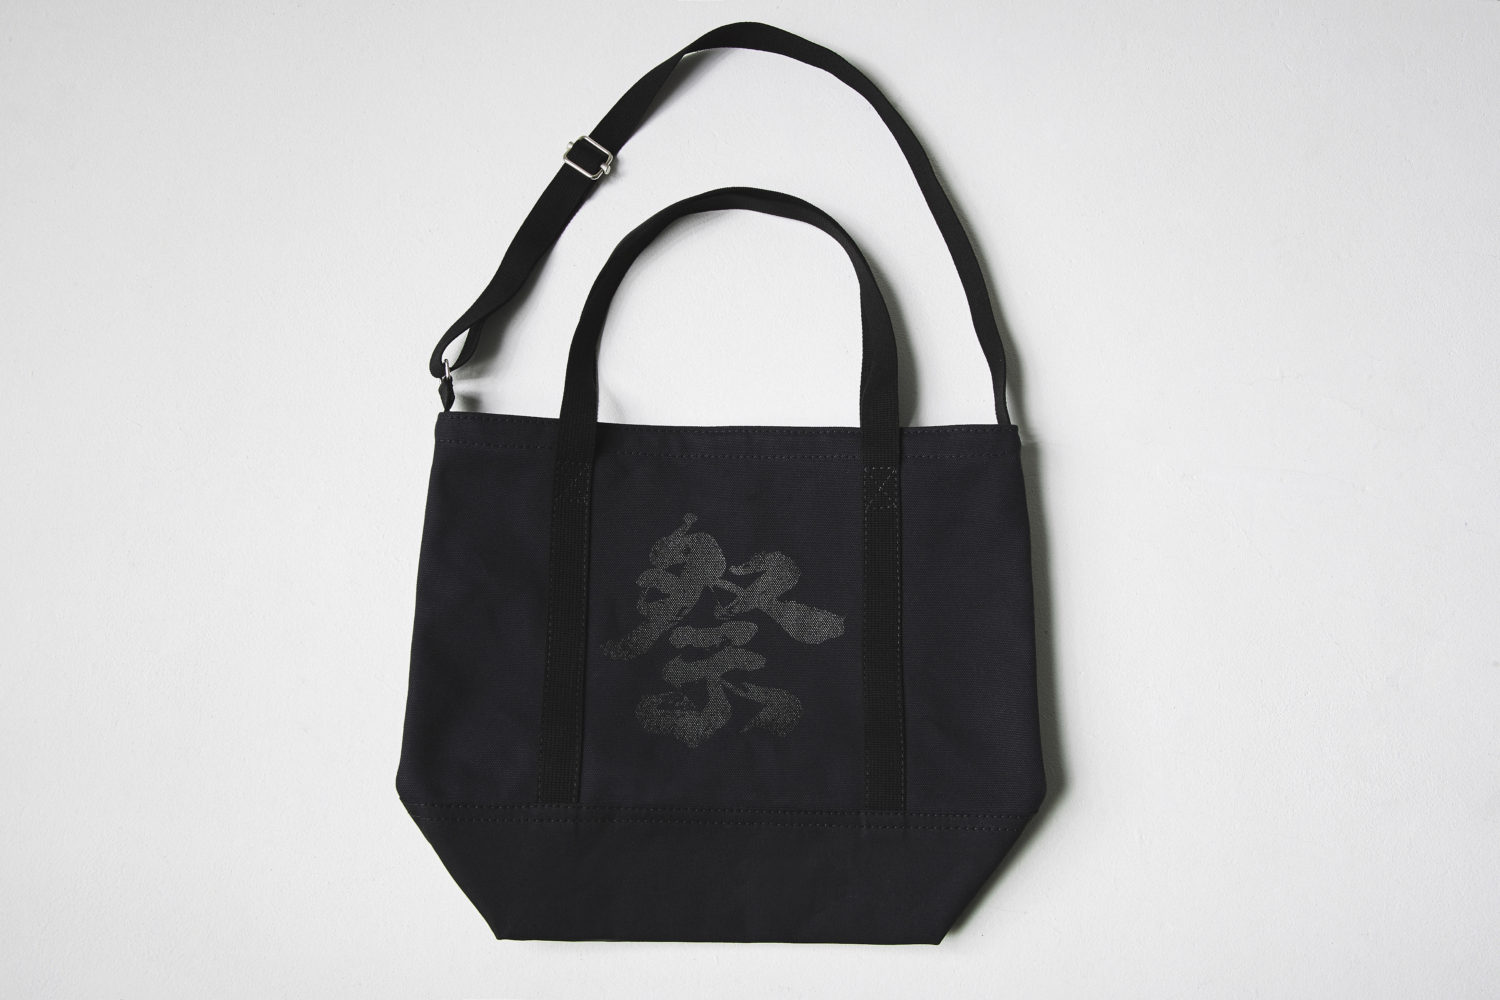 michizane_bag_007_b